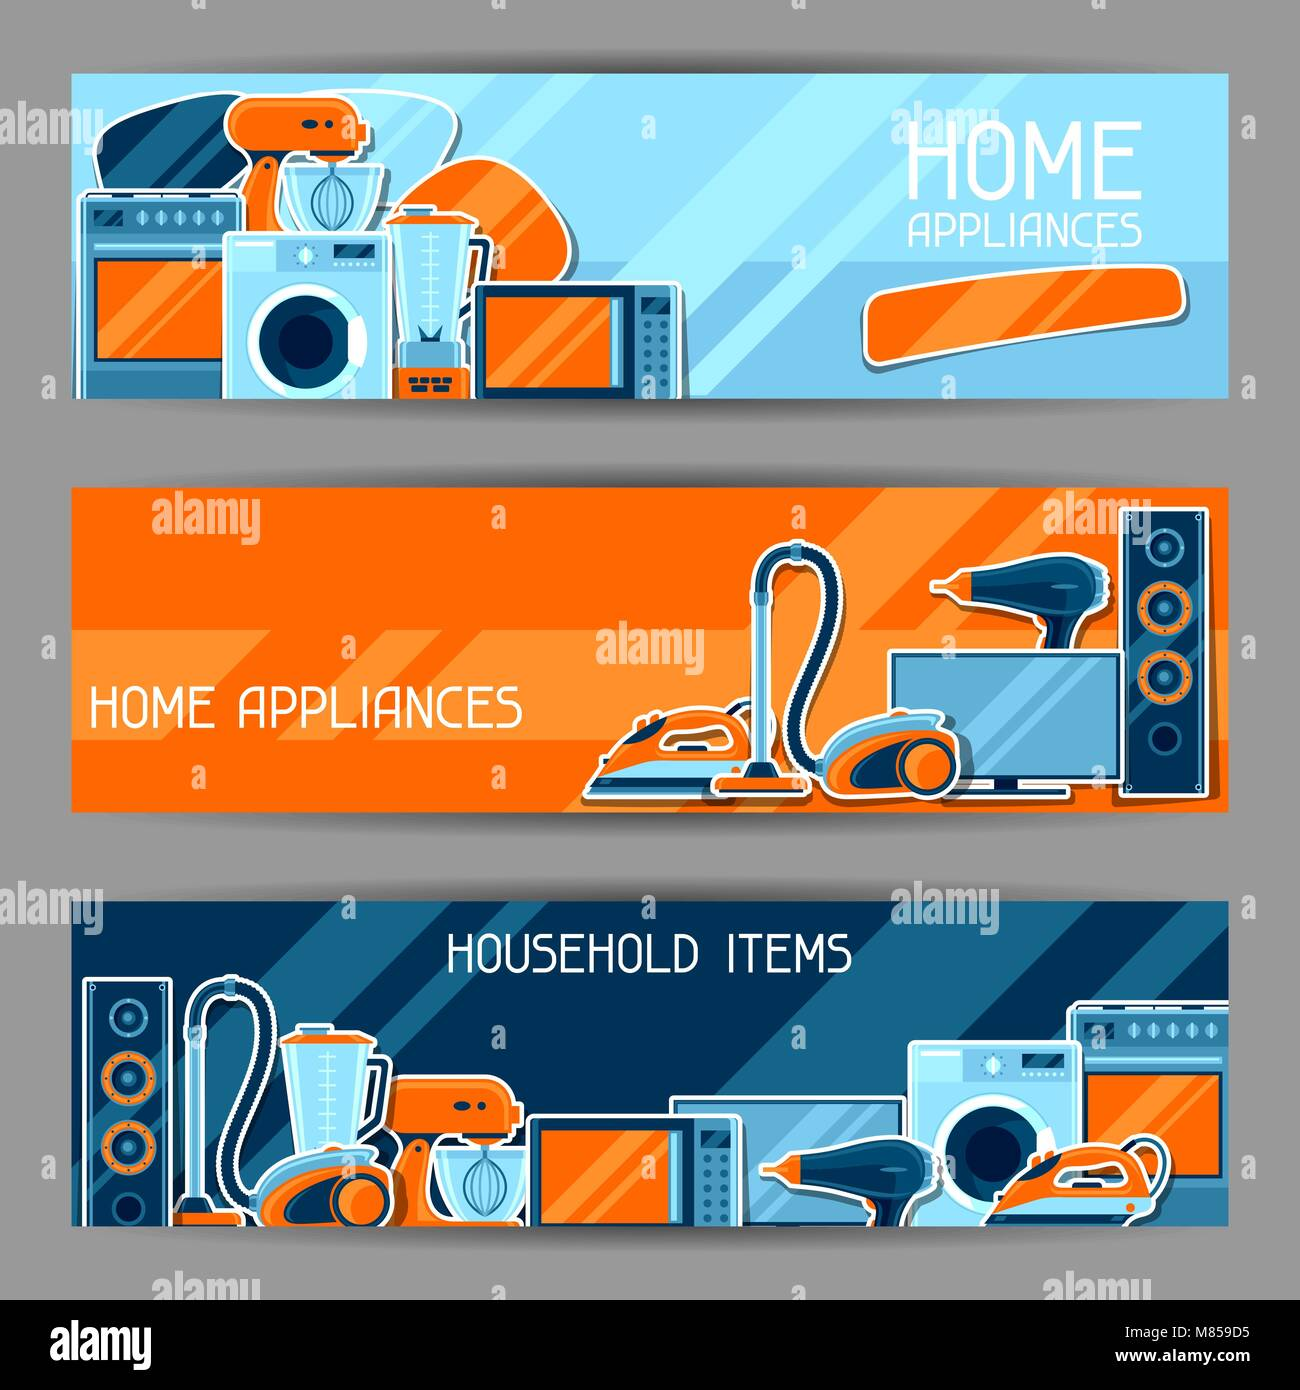 banners with home appliances household items for sale and shopping advertising poster